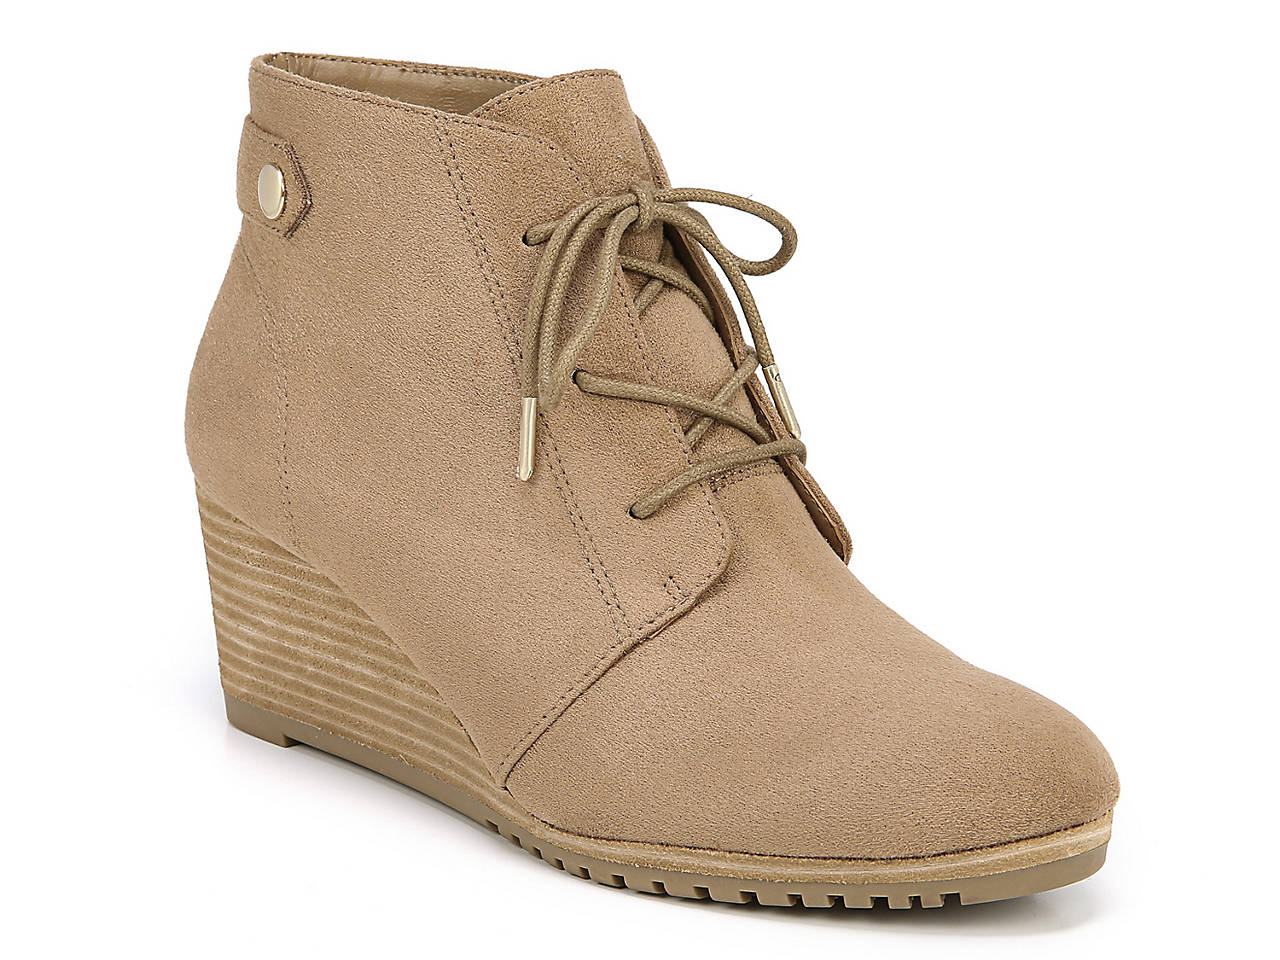 4d7f0037cdc3 Dr. Scholl s Conquer Wedge Bootie Women s Shoes